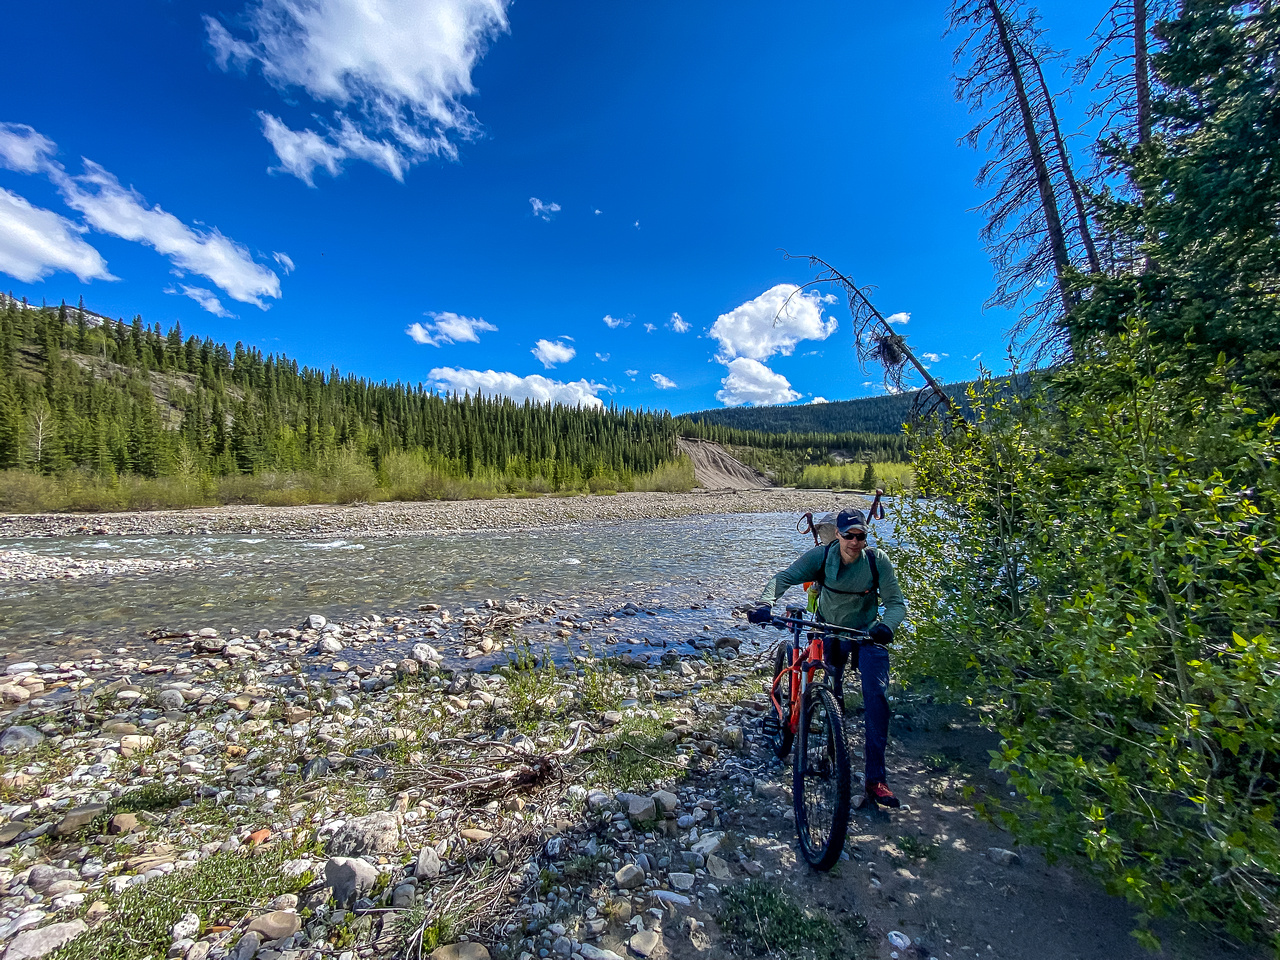 Finished the bike ride after crossing Hummingbird Creek.